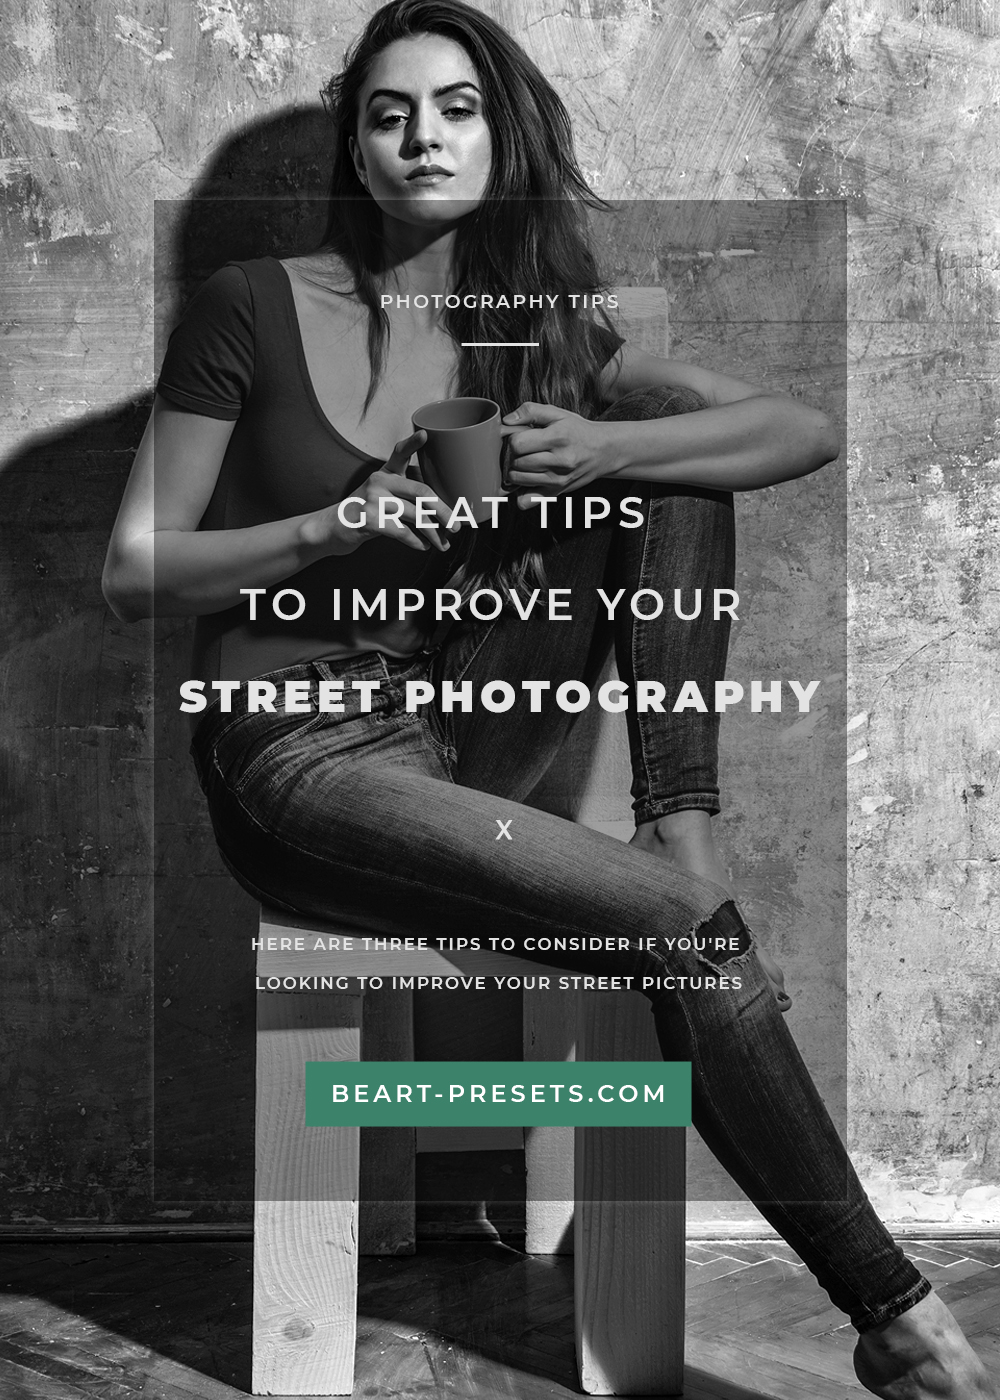 tips for improve street photography